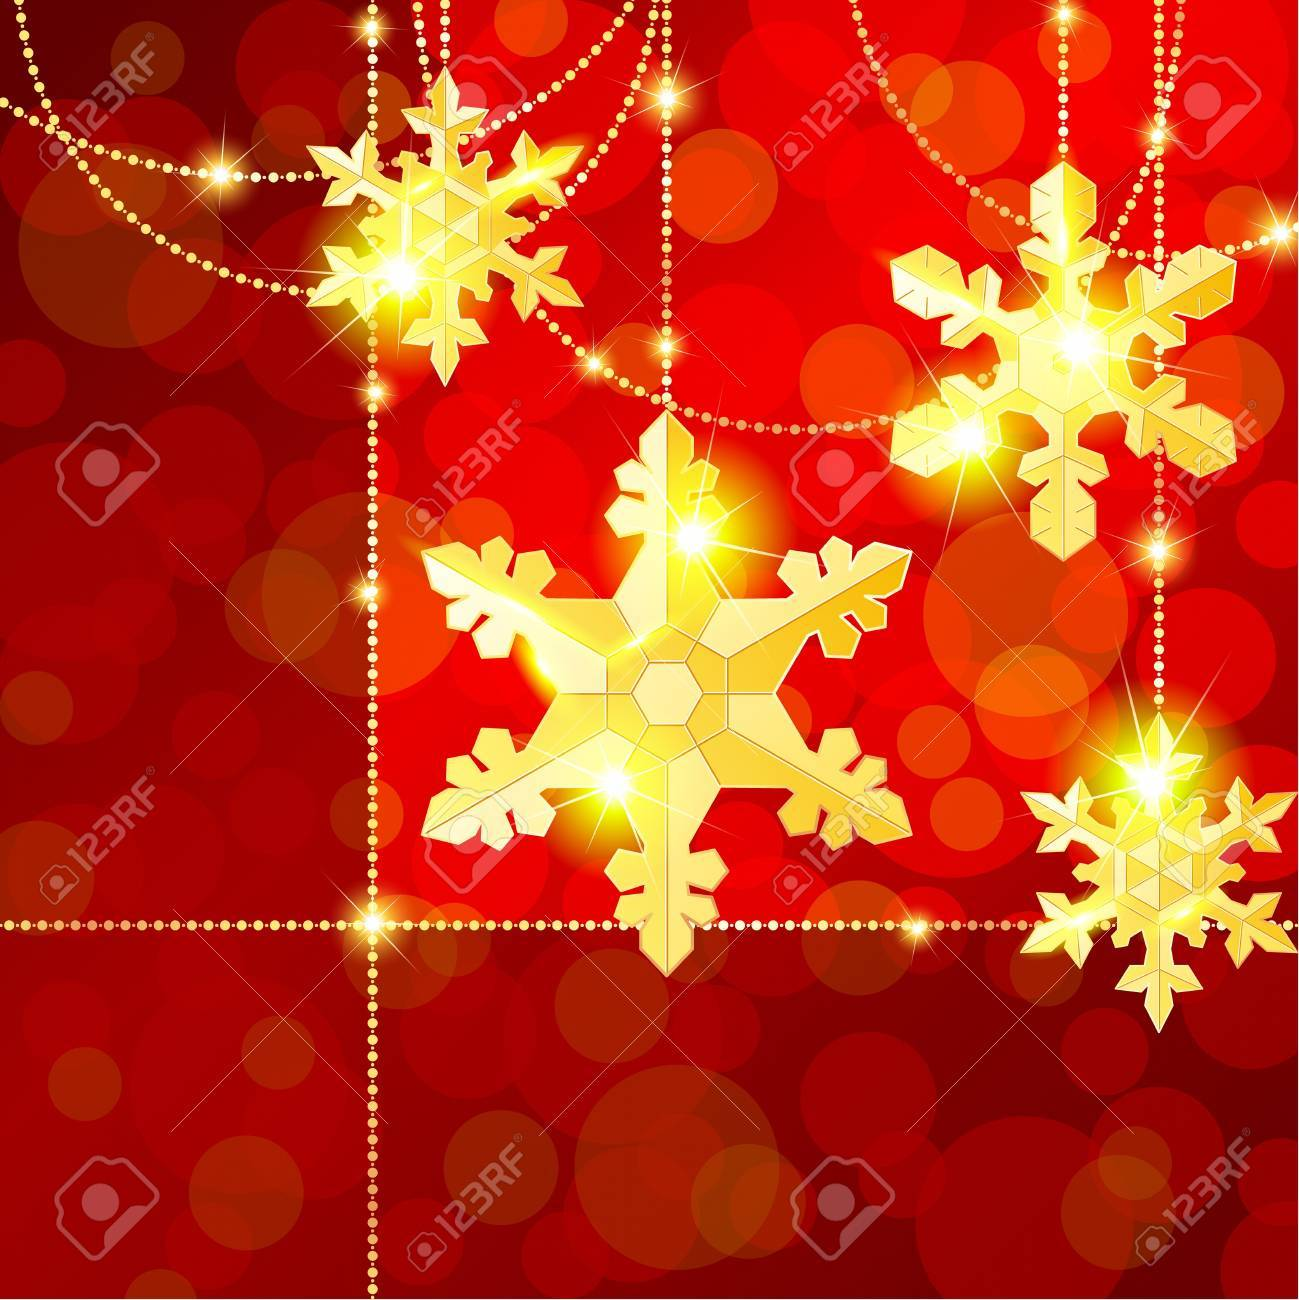 Gold and red ornaments - Red And Gold Christmas Banner With Delicate Snowflake Ornaments Graphics Are Grouped And In Several